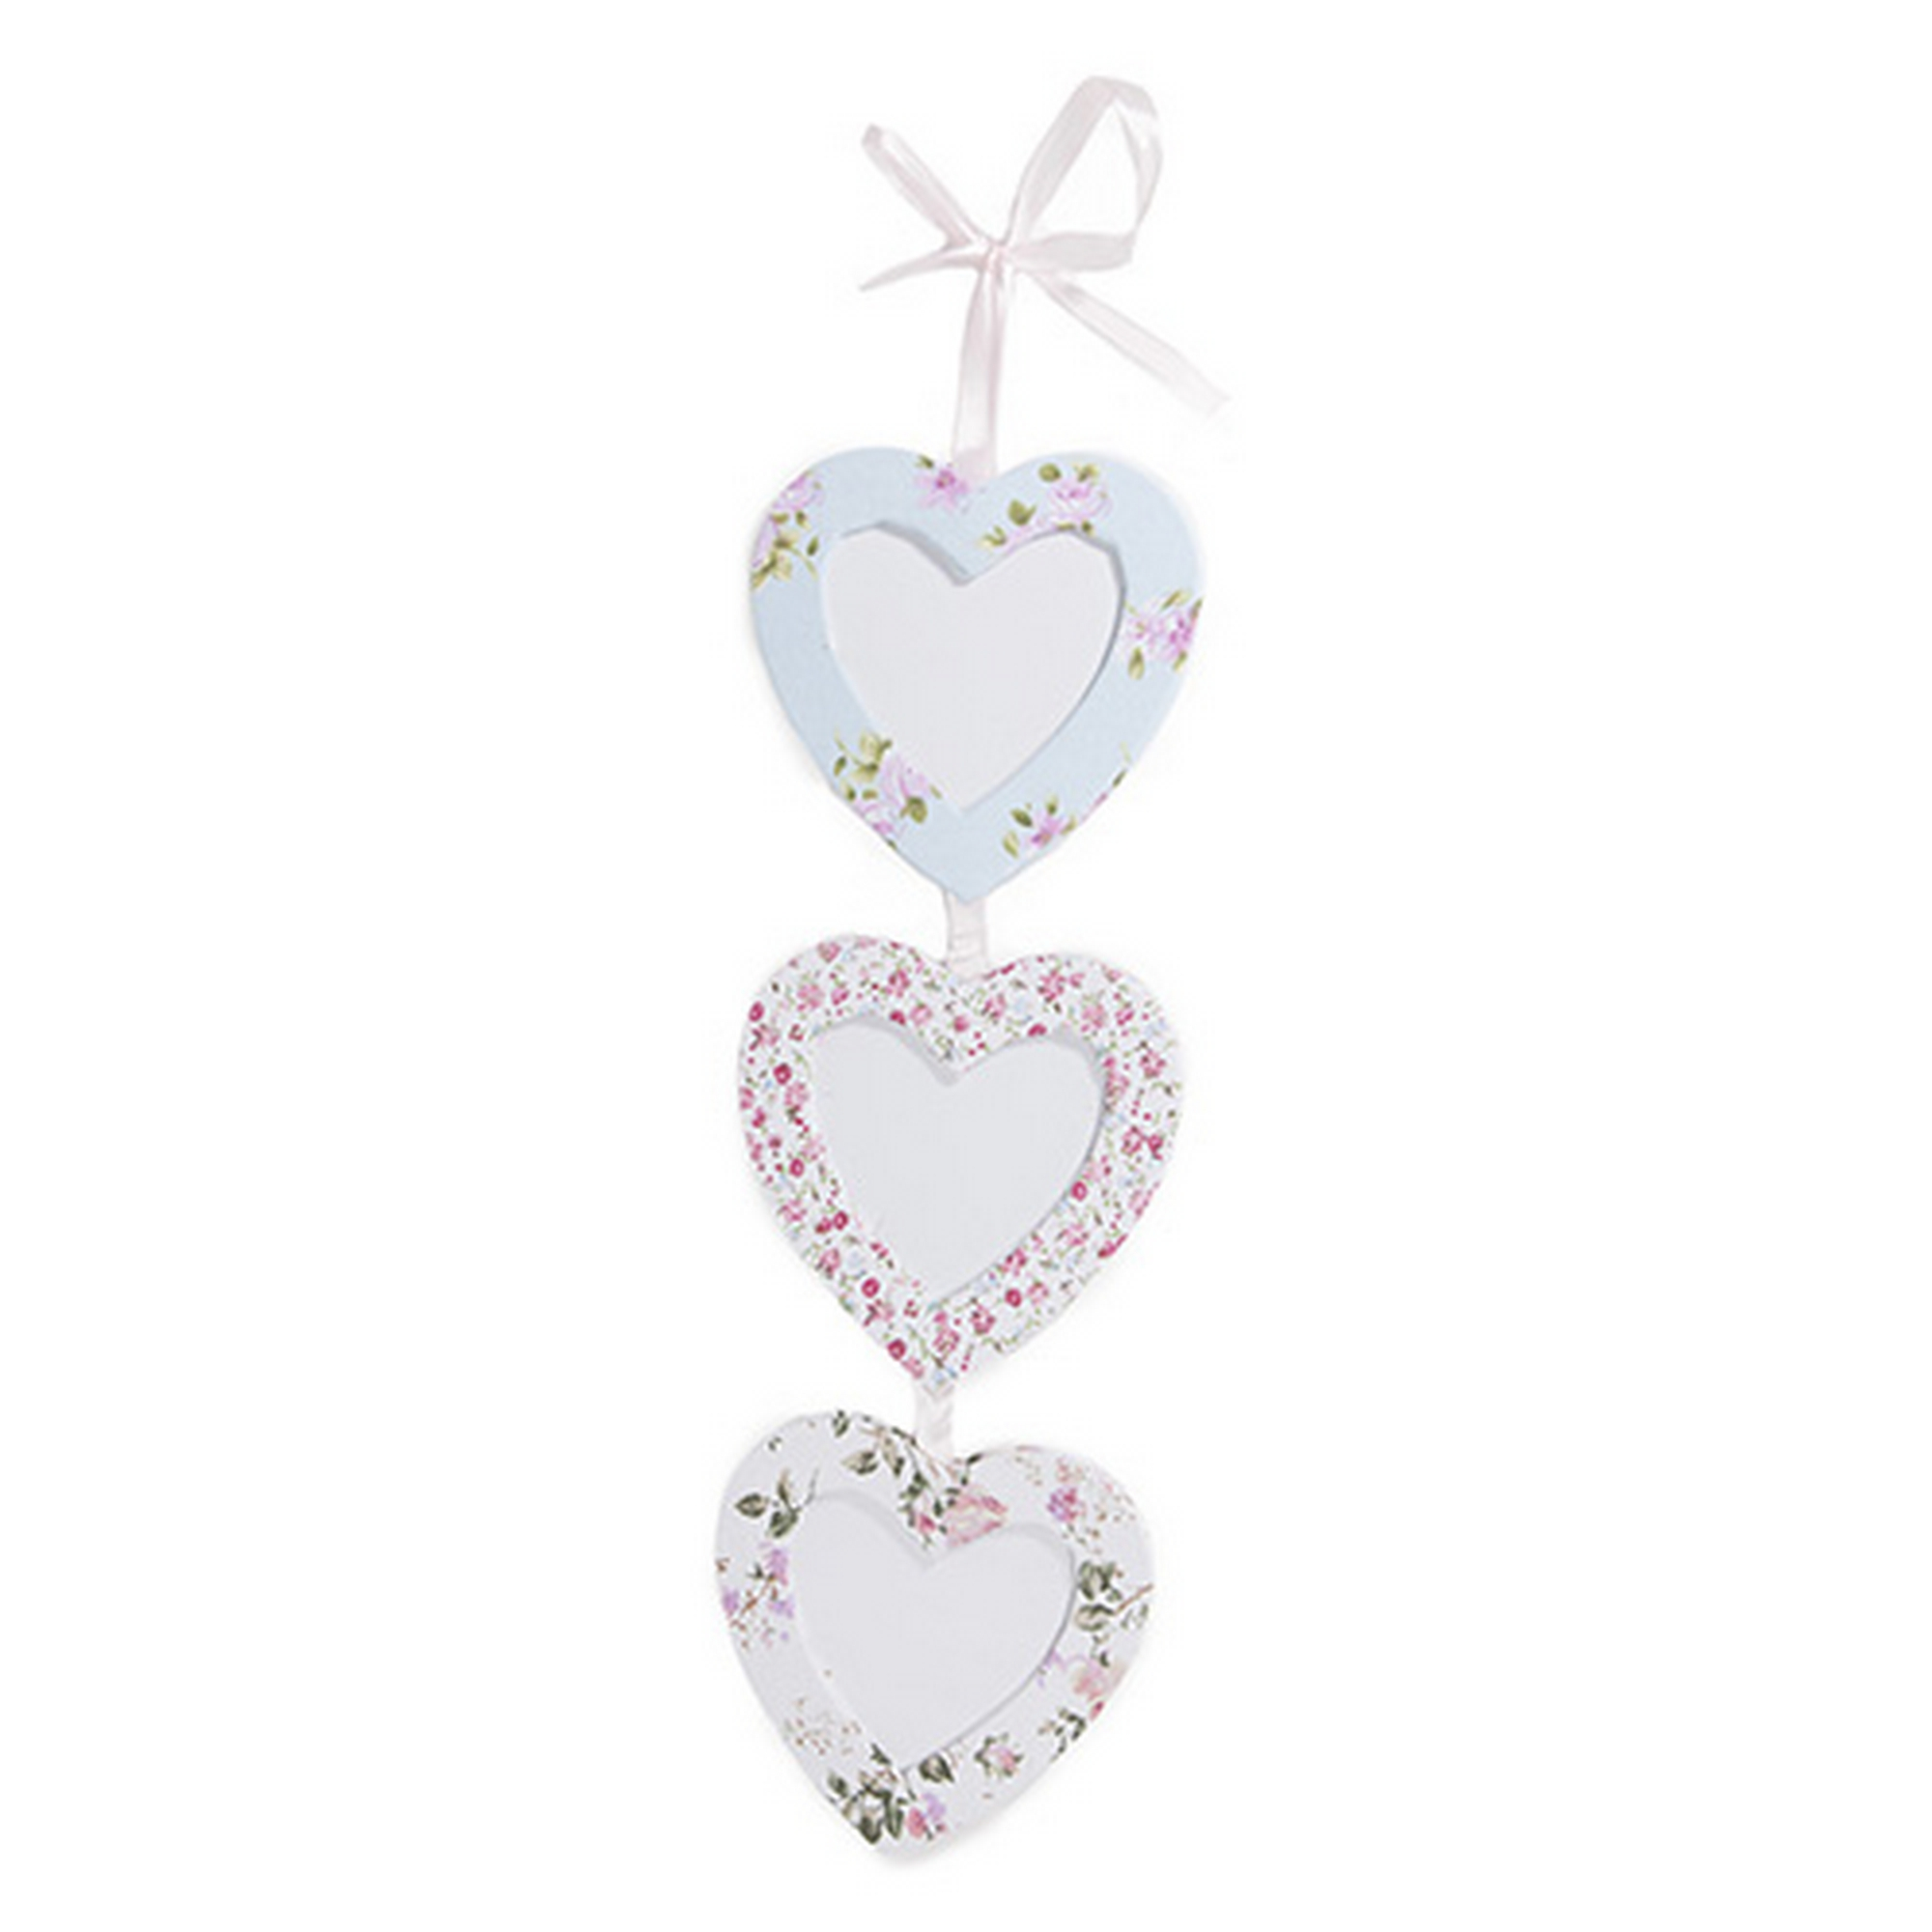 Heart Shaped 3 Tier English Vintage Floral Wall Hanging